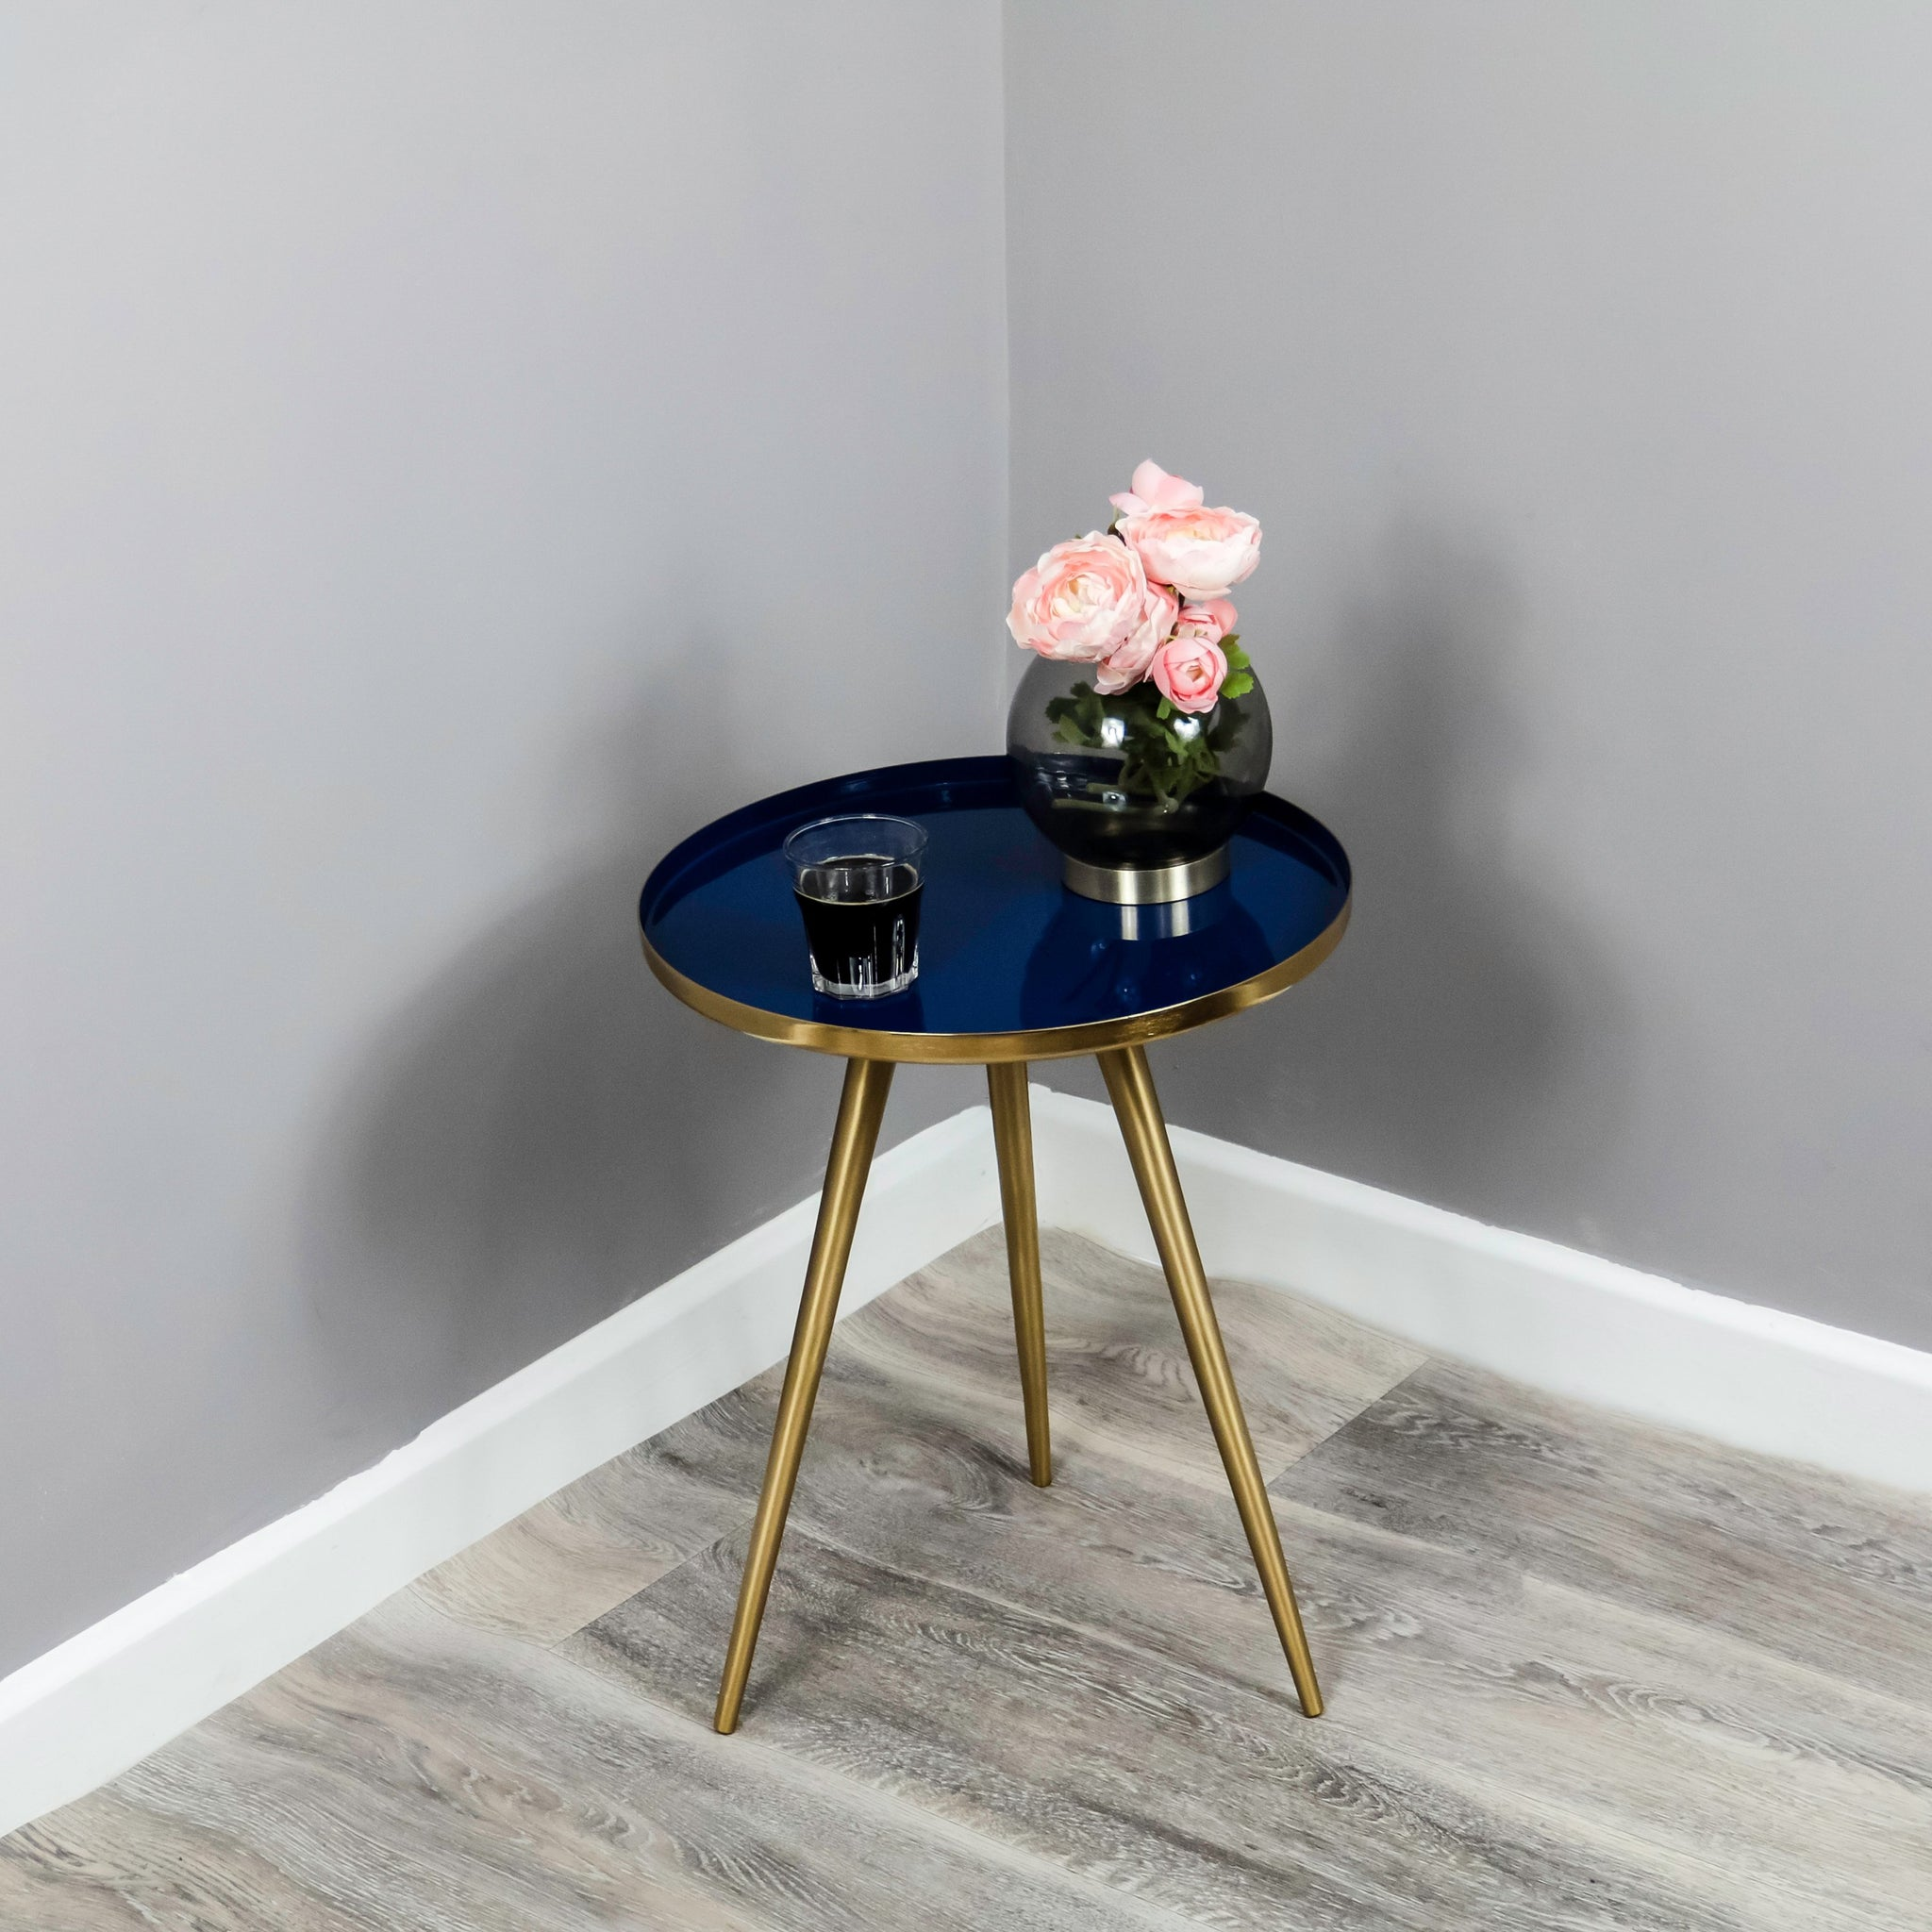 Side Table Blue Enamel Tray - The Quirky Home Co